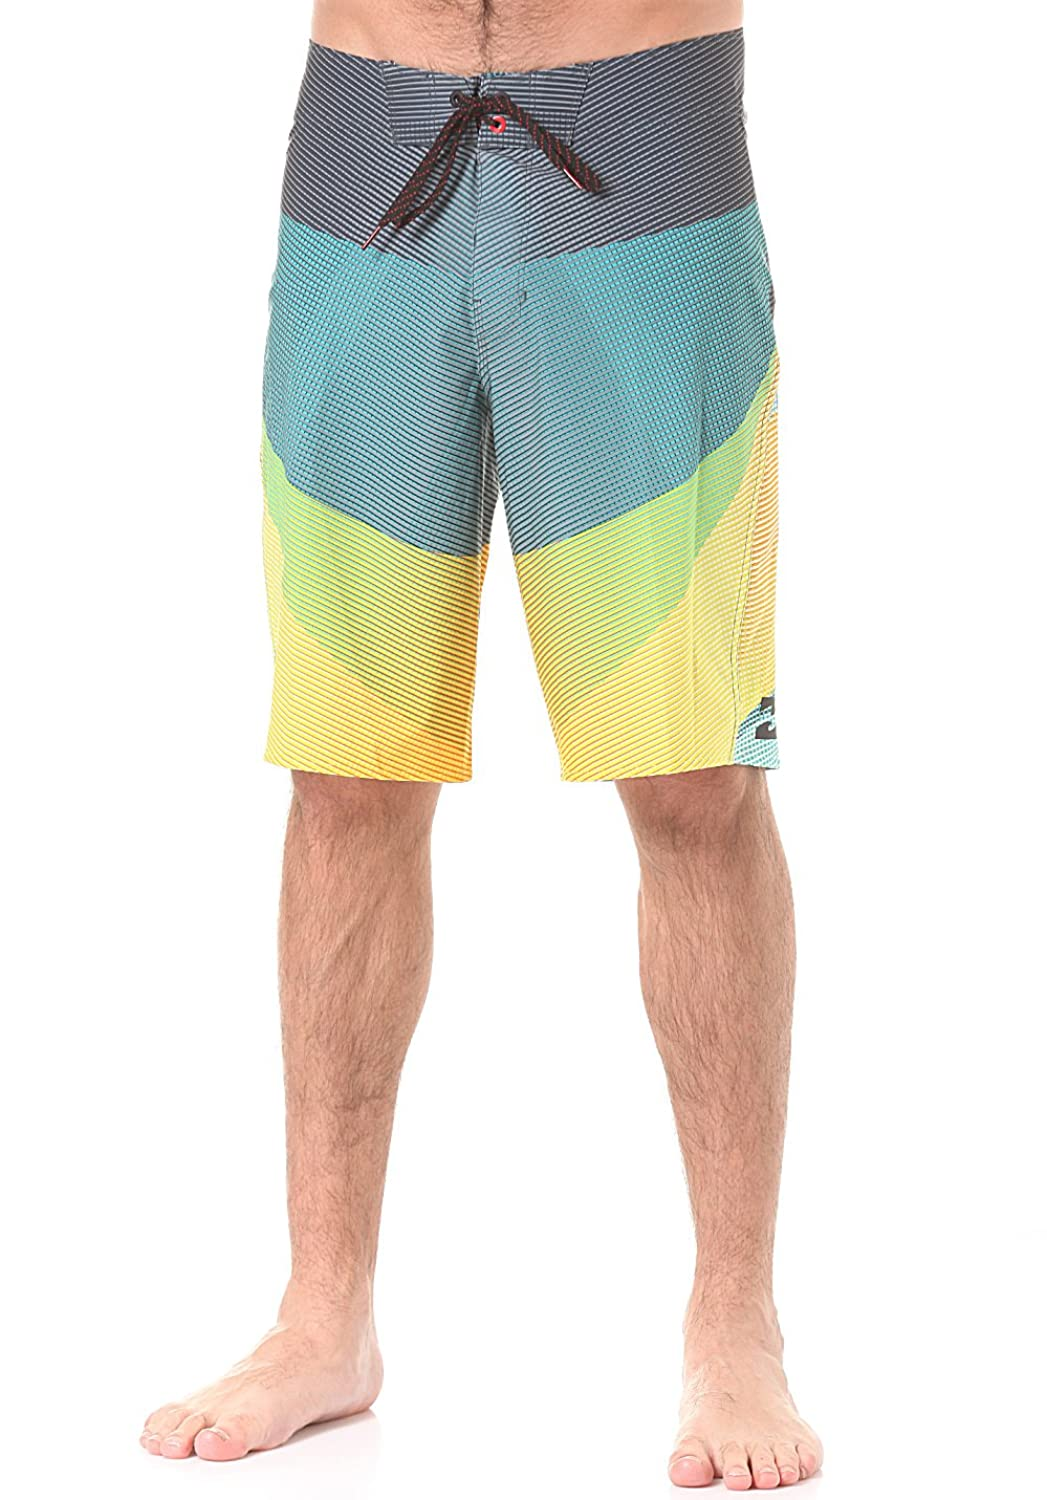 Billabong Board Shorts - Billabong Fluid X 21 B...